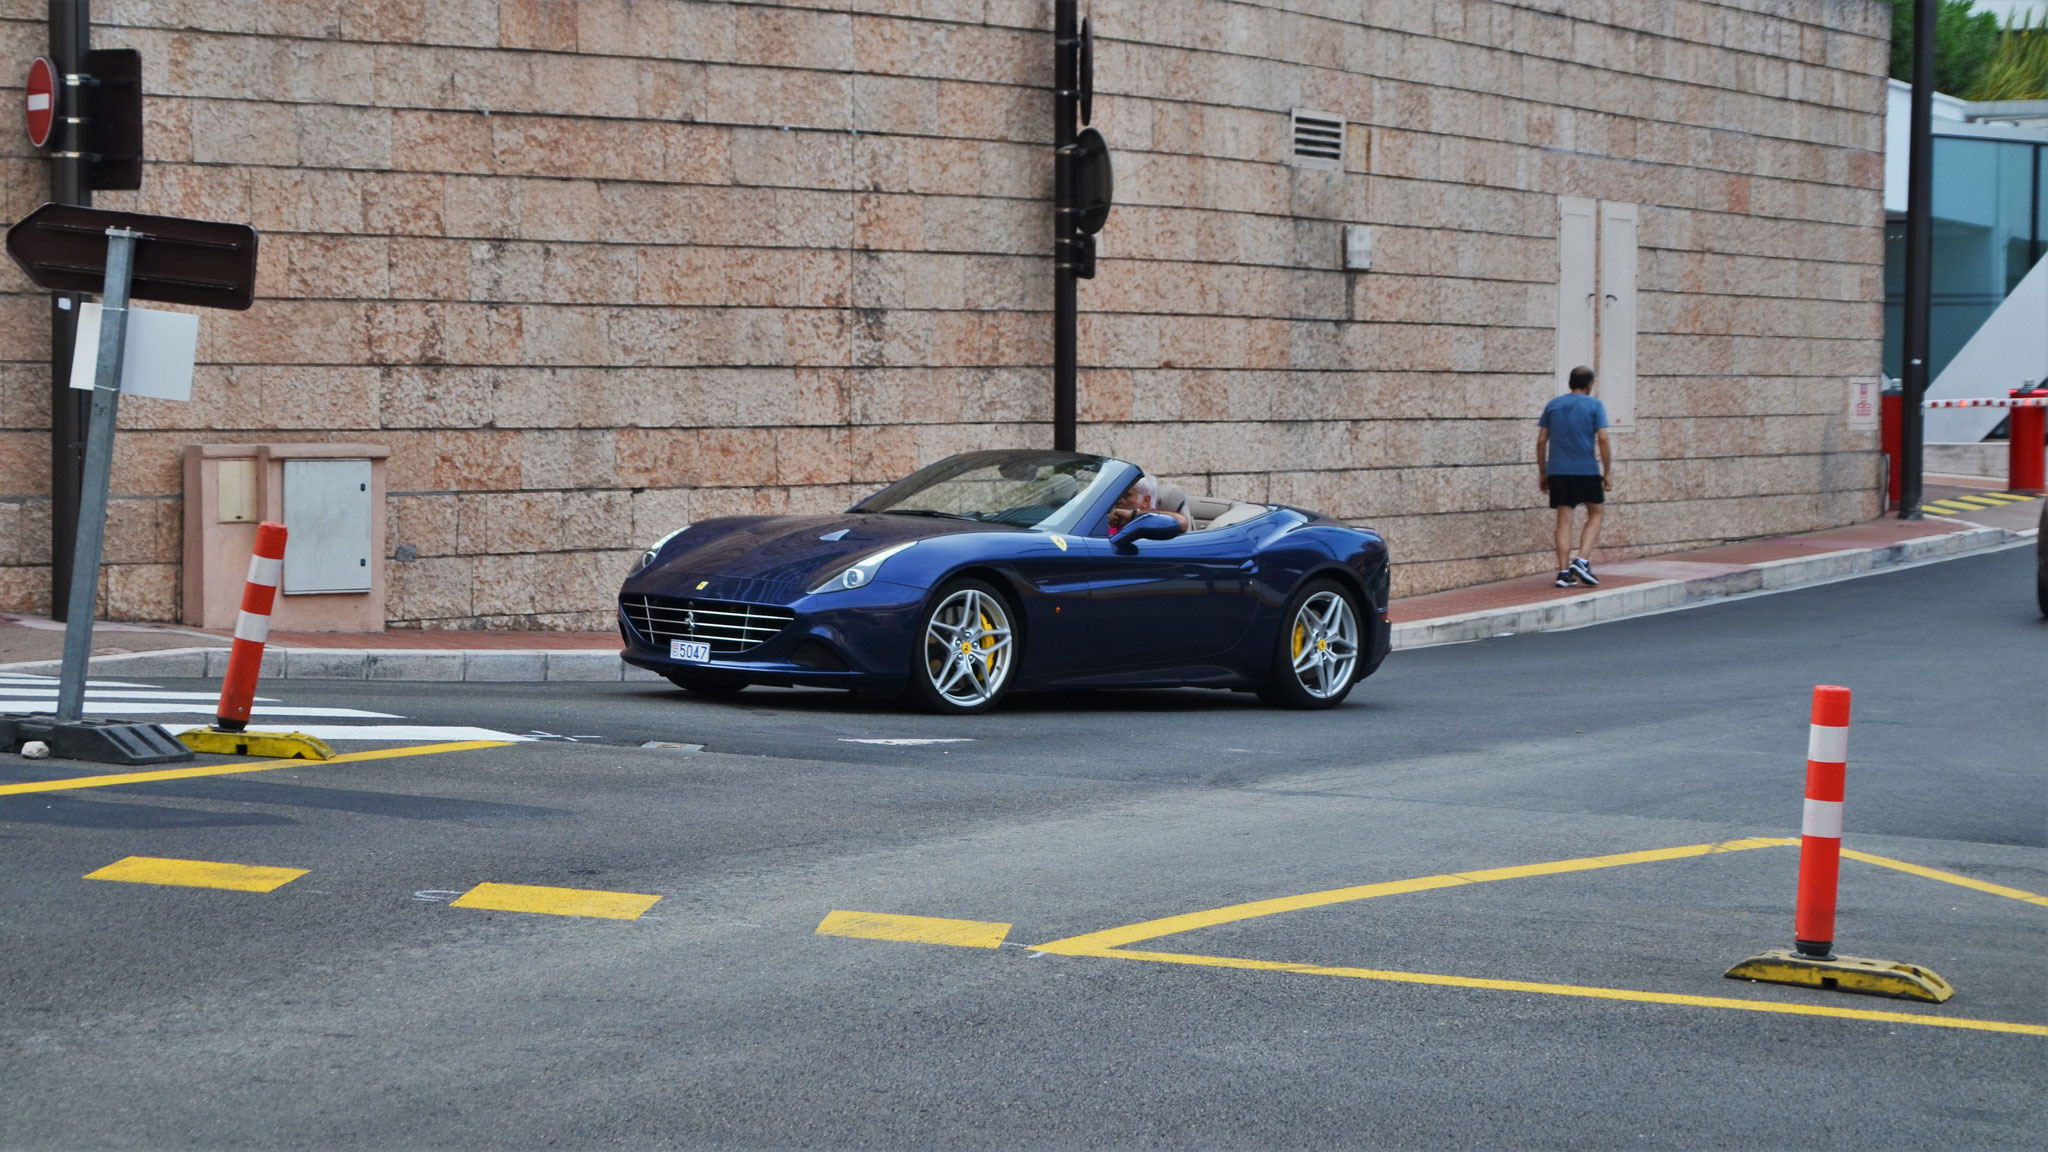 Ferrari California T - 5047 (MC)